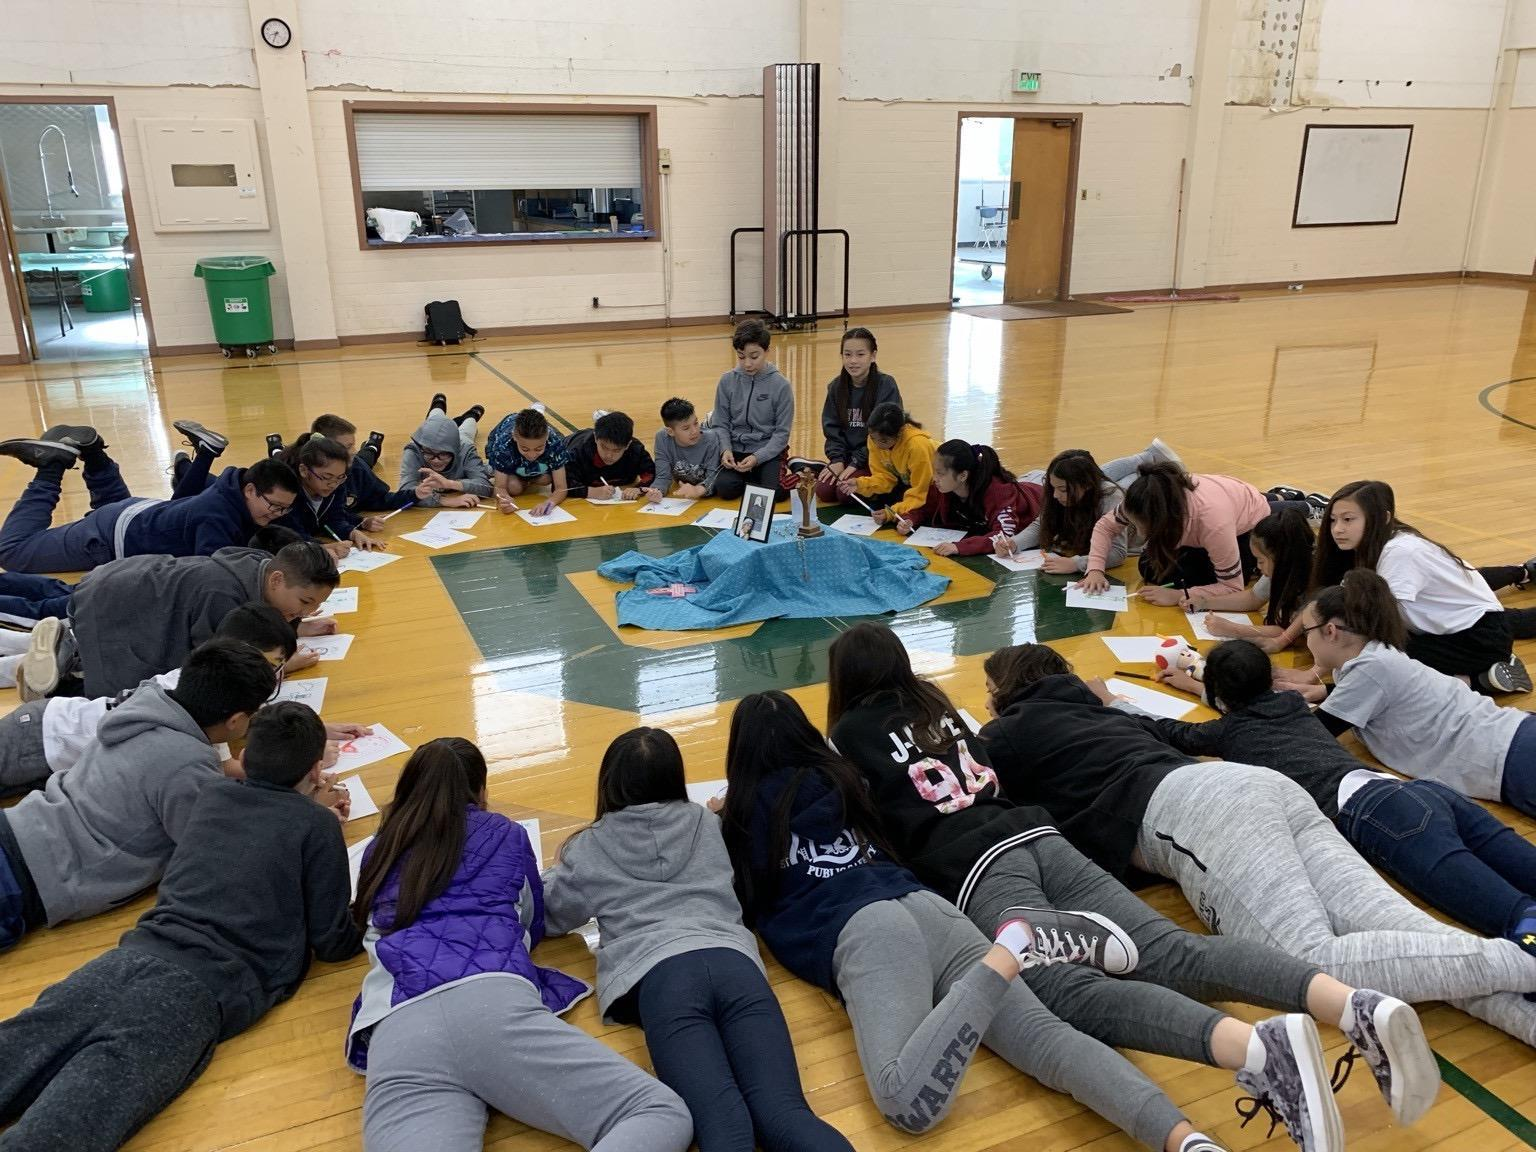 The students doing a team building exercise.